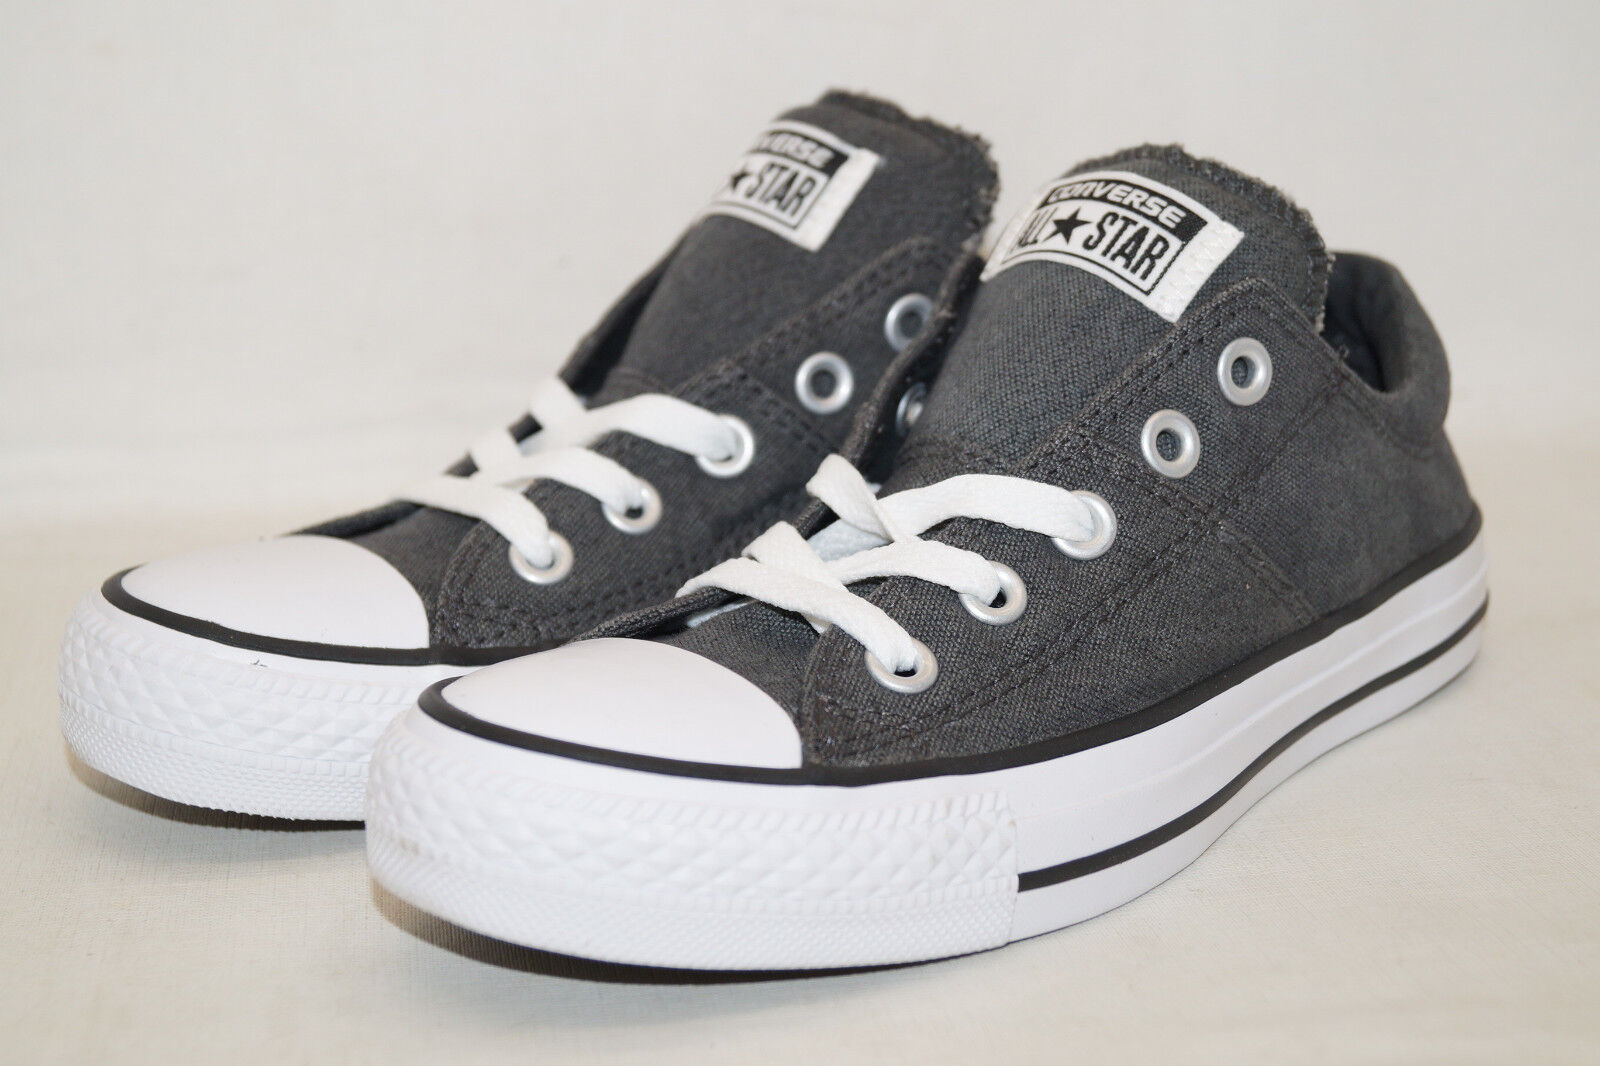 CONVERSE CHUCKS ALL STAR LOW LOW LOW OX MADINSON STORM WIND Gr.36 UK 3,5 549701C grau d6fdbc